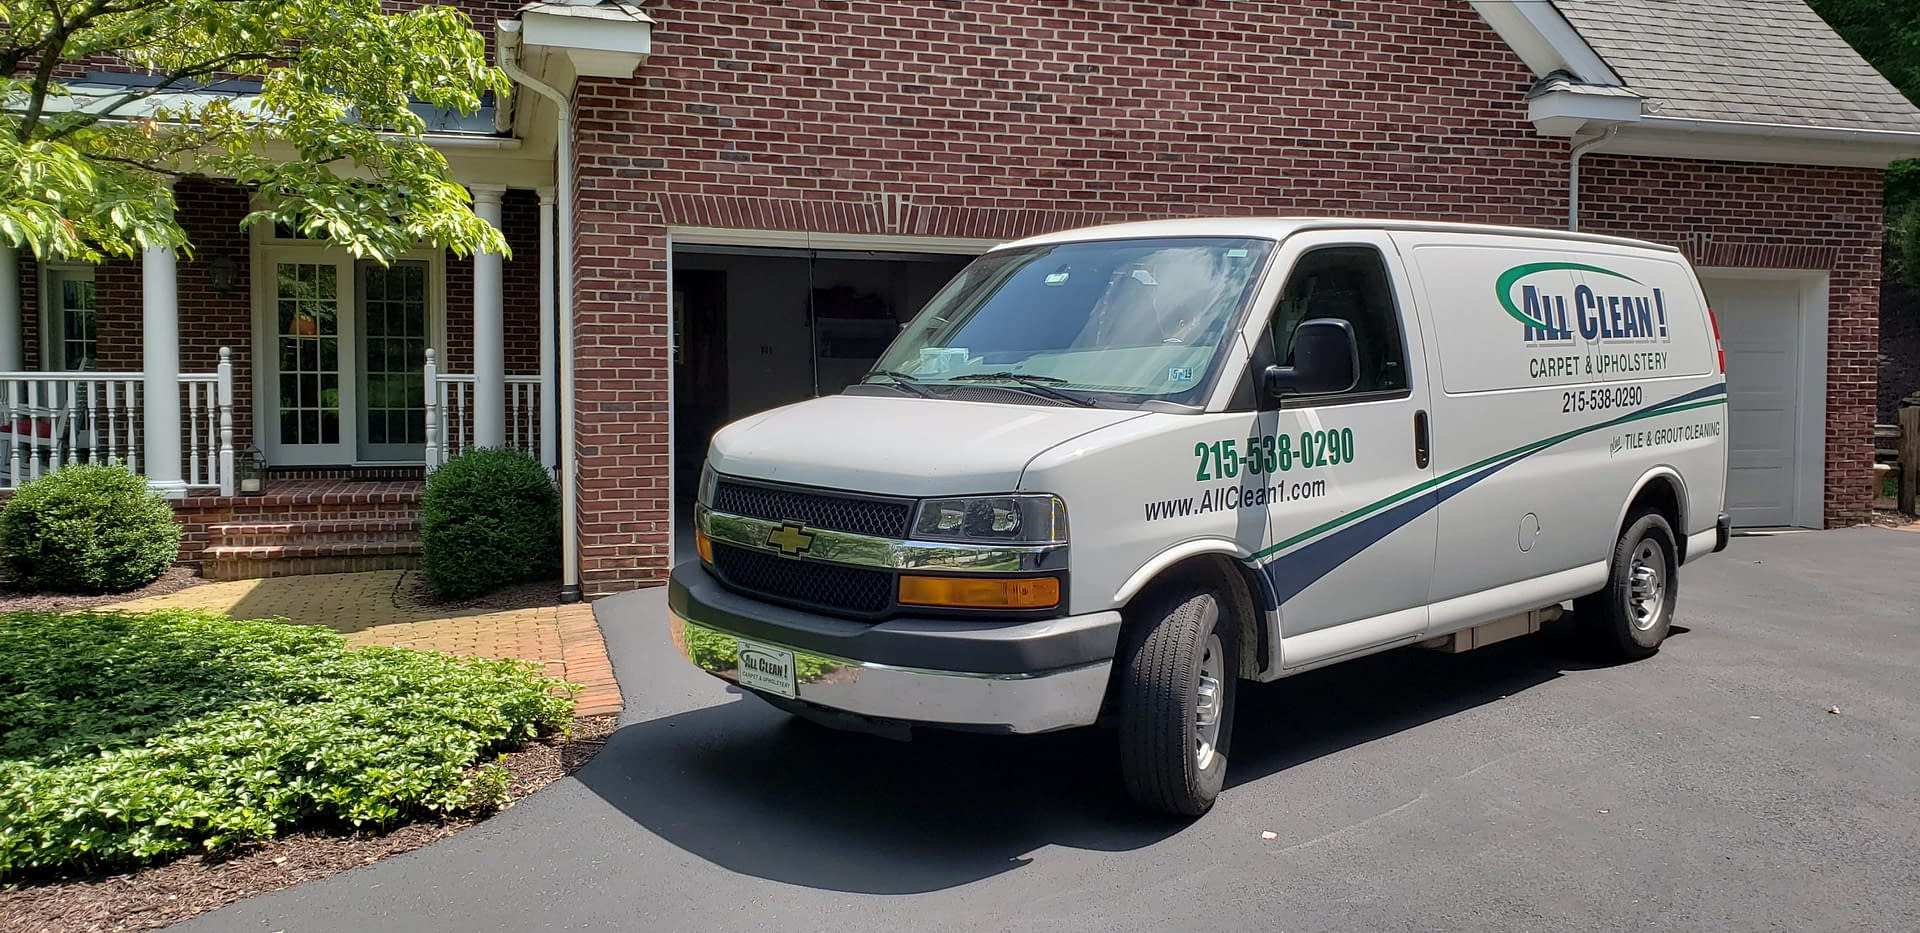 Carpet Cleaning Van Outside of Customer's Home